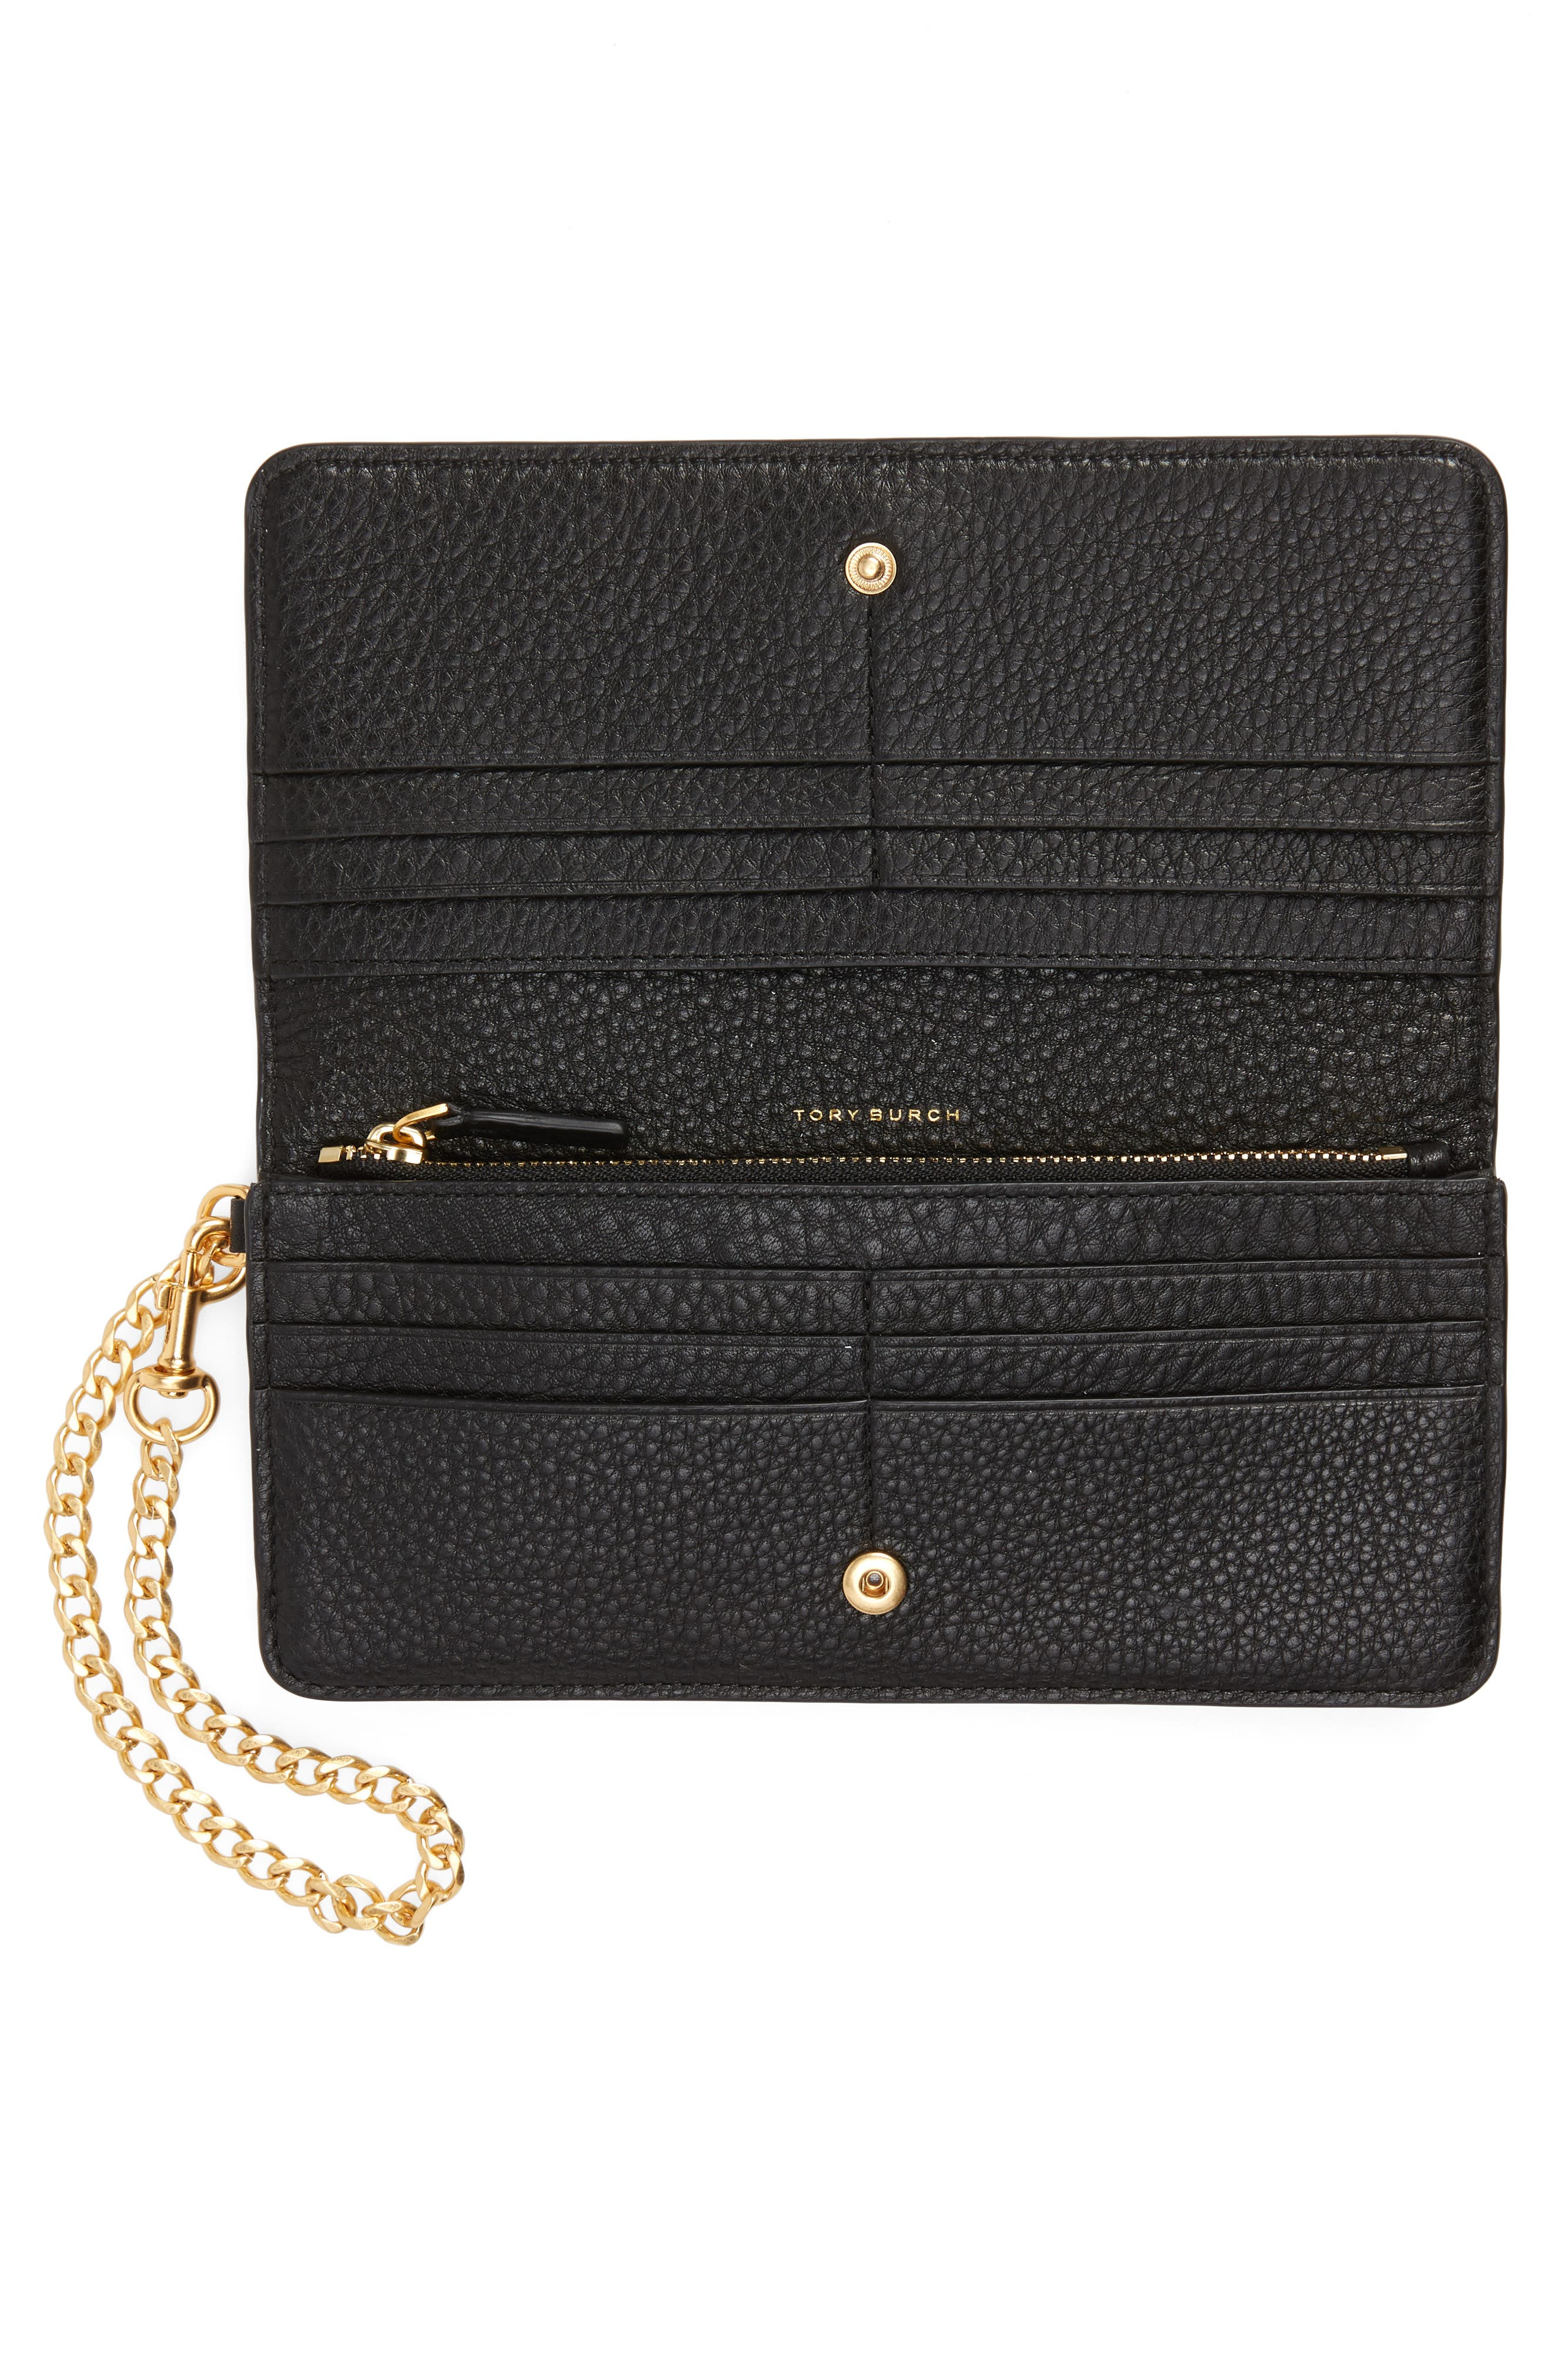 TORY BURCH,                             Chelsea Leather Wristlet Wallet,                             Alternate thumbnail 2, color,                             001